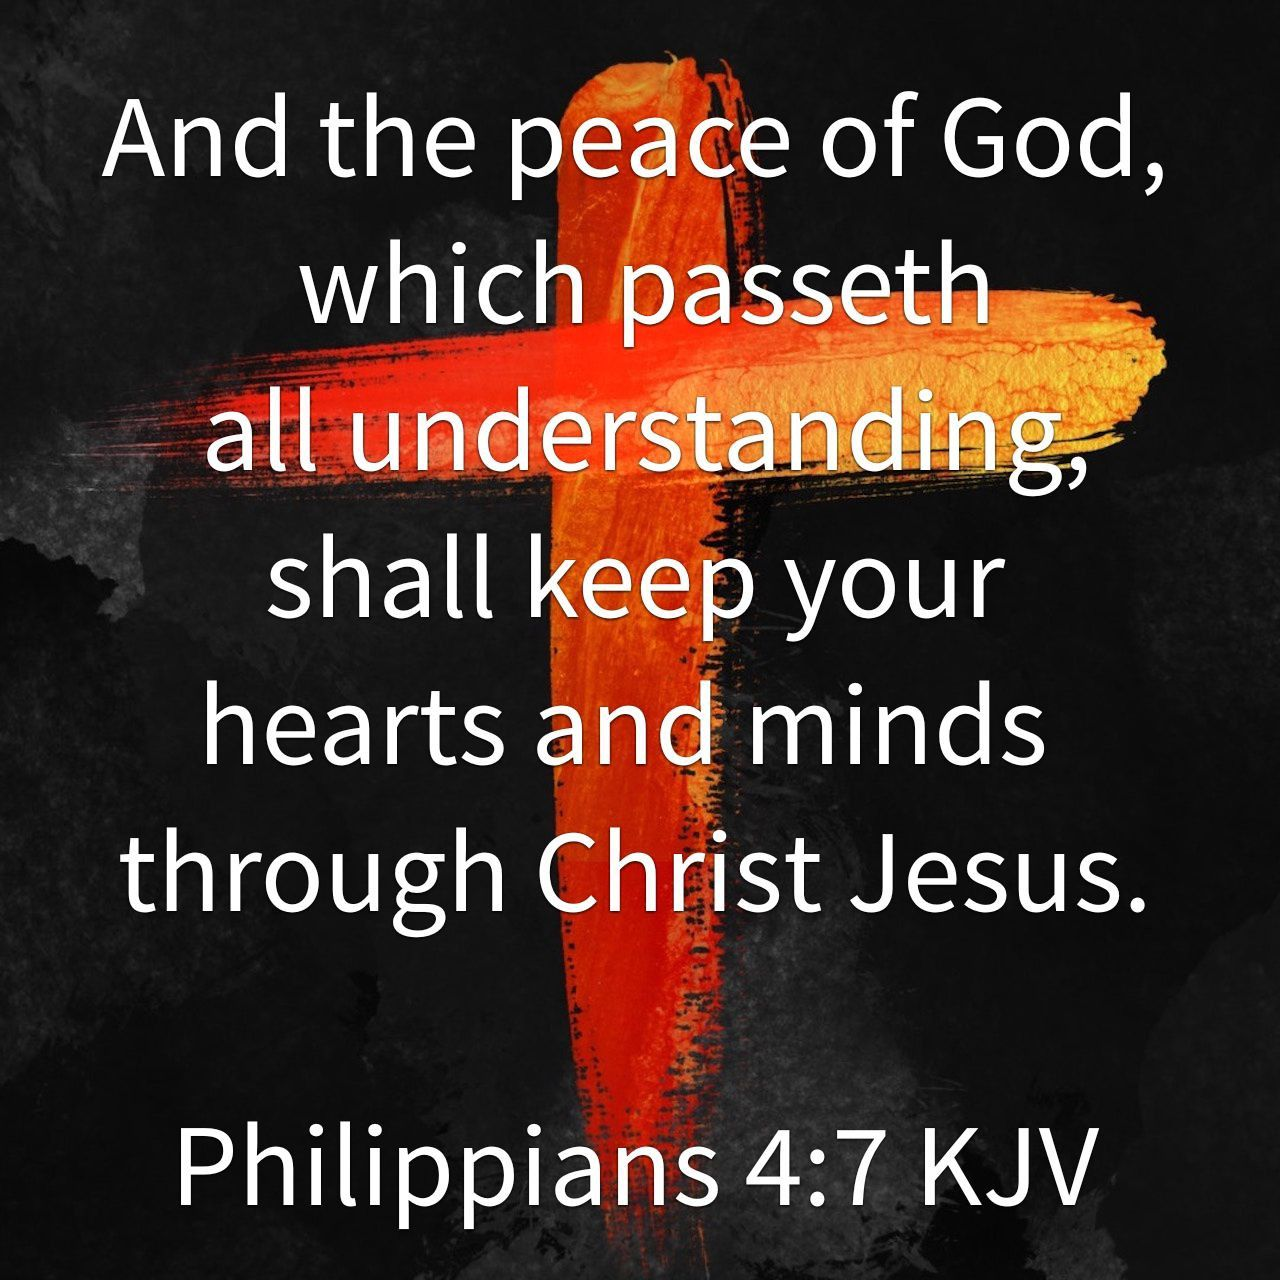 And the peace of God, which passeth all understanding, shall keep your hearts and minds through Christ Jesu… | Peace of god, Words of  encouragement, Positive quotes